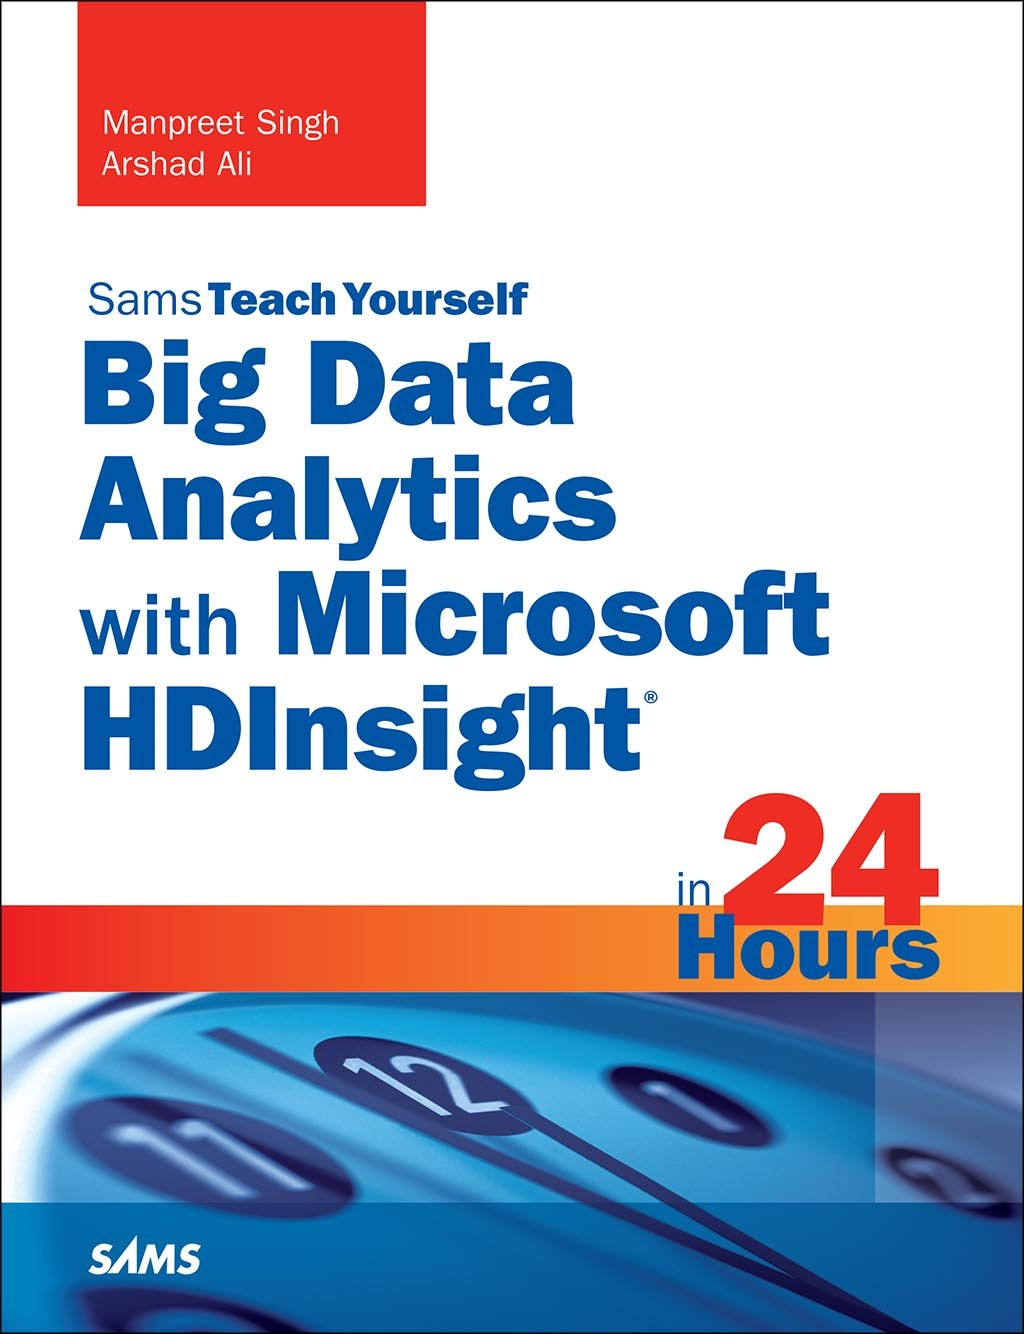 Big Data Analytics with Microsoft HDInsight in 24 Hours, Sams Teach Yourself